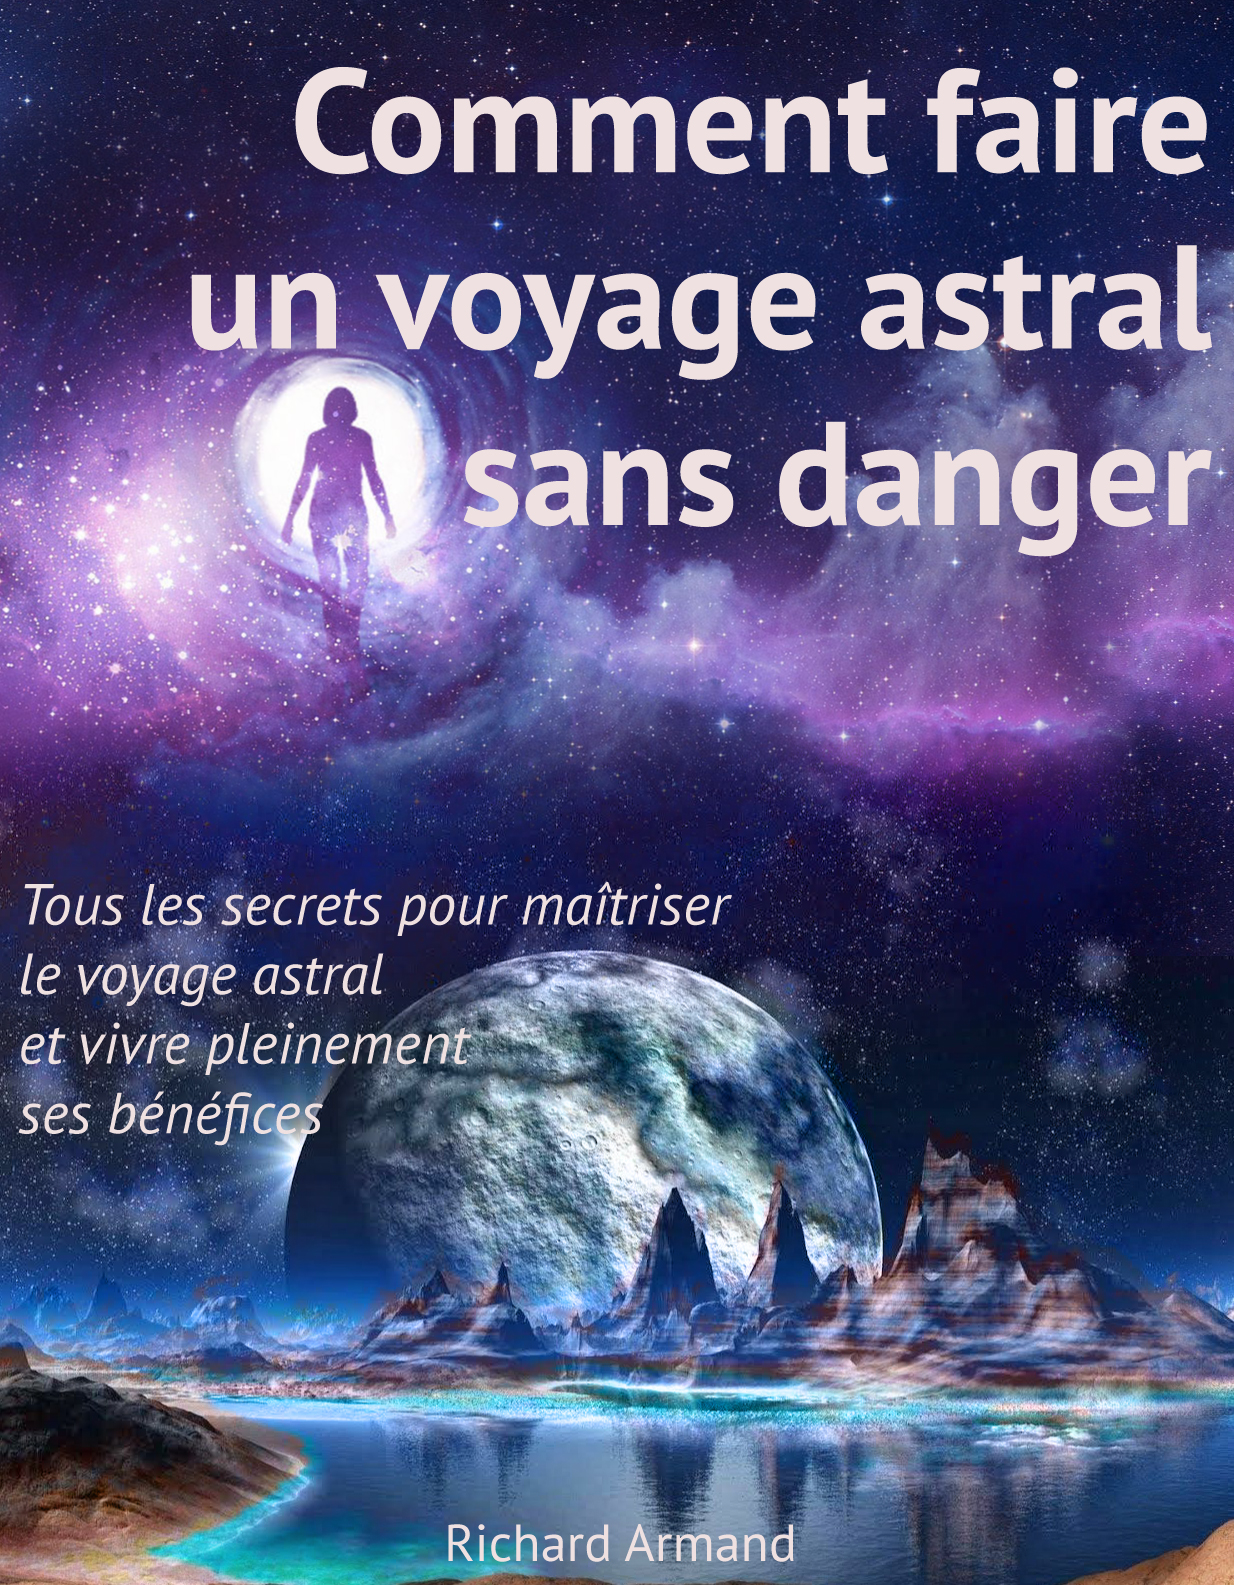 Rencontre pendant voyage astral